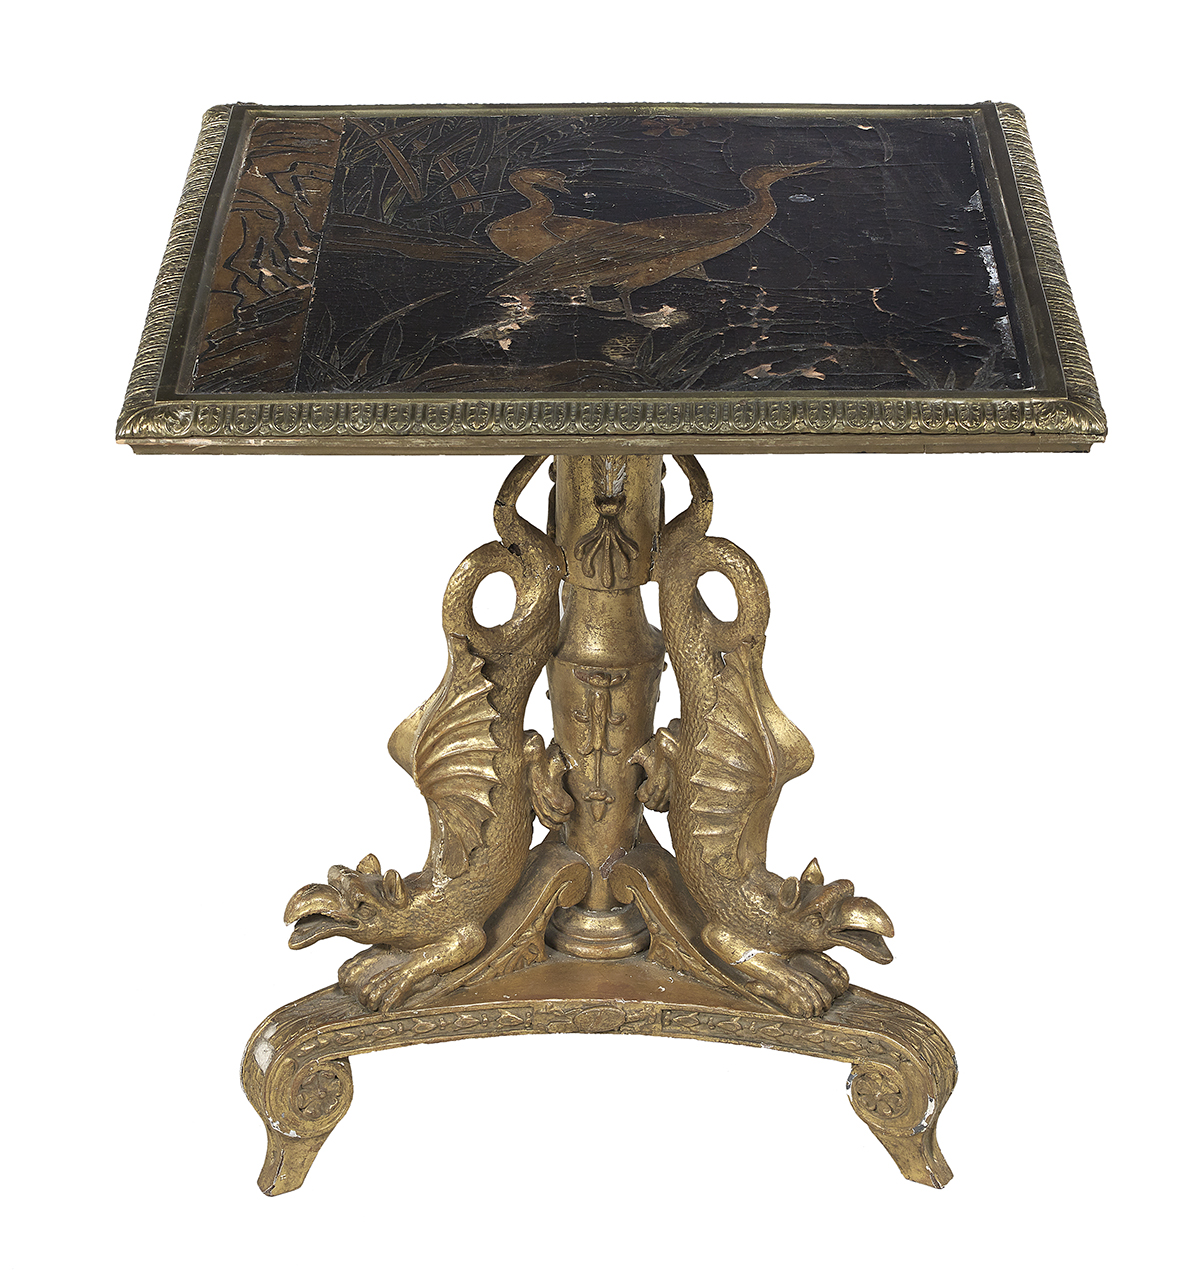 Lot 992 - Meiji-Style Lacquered Occasional Table